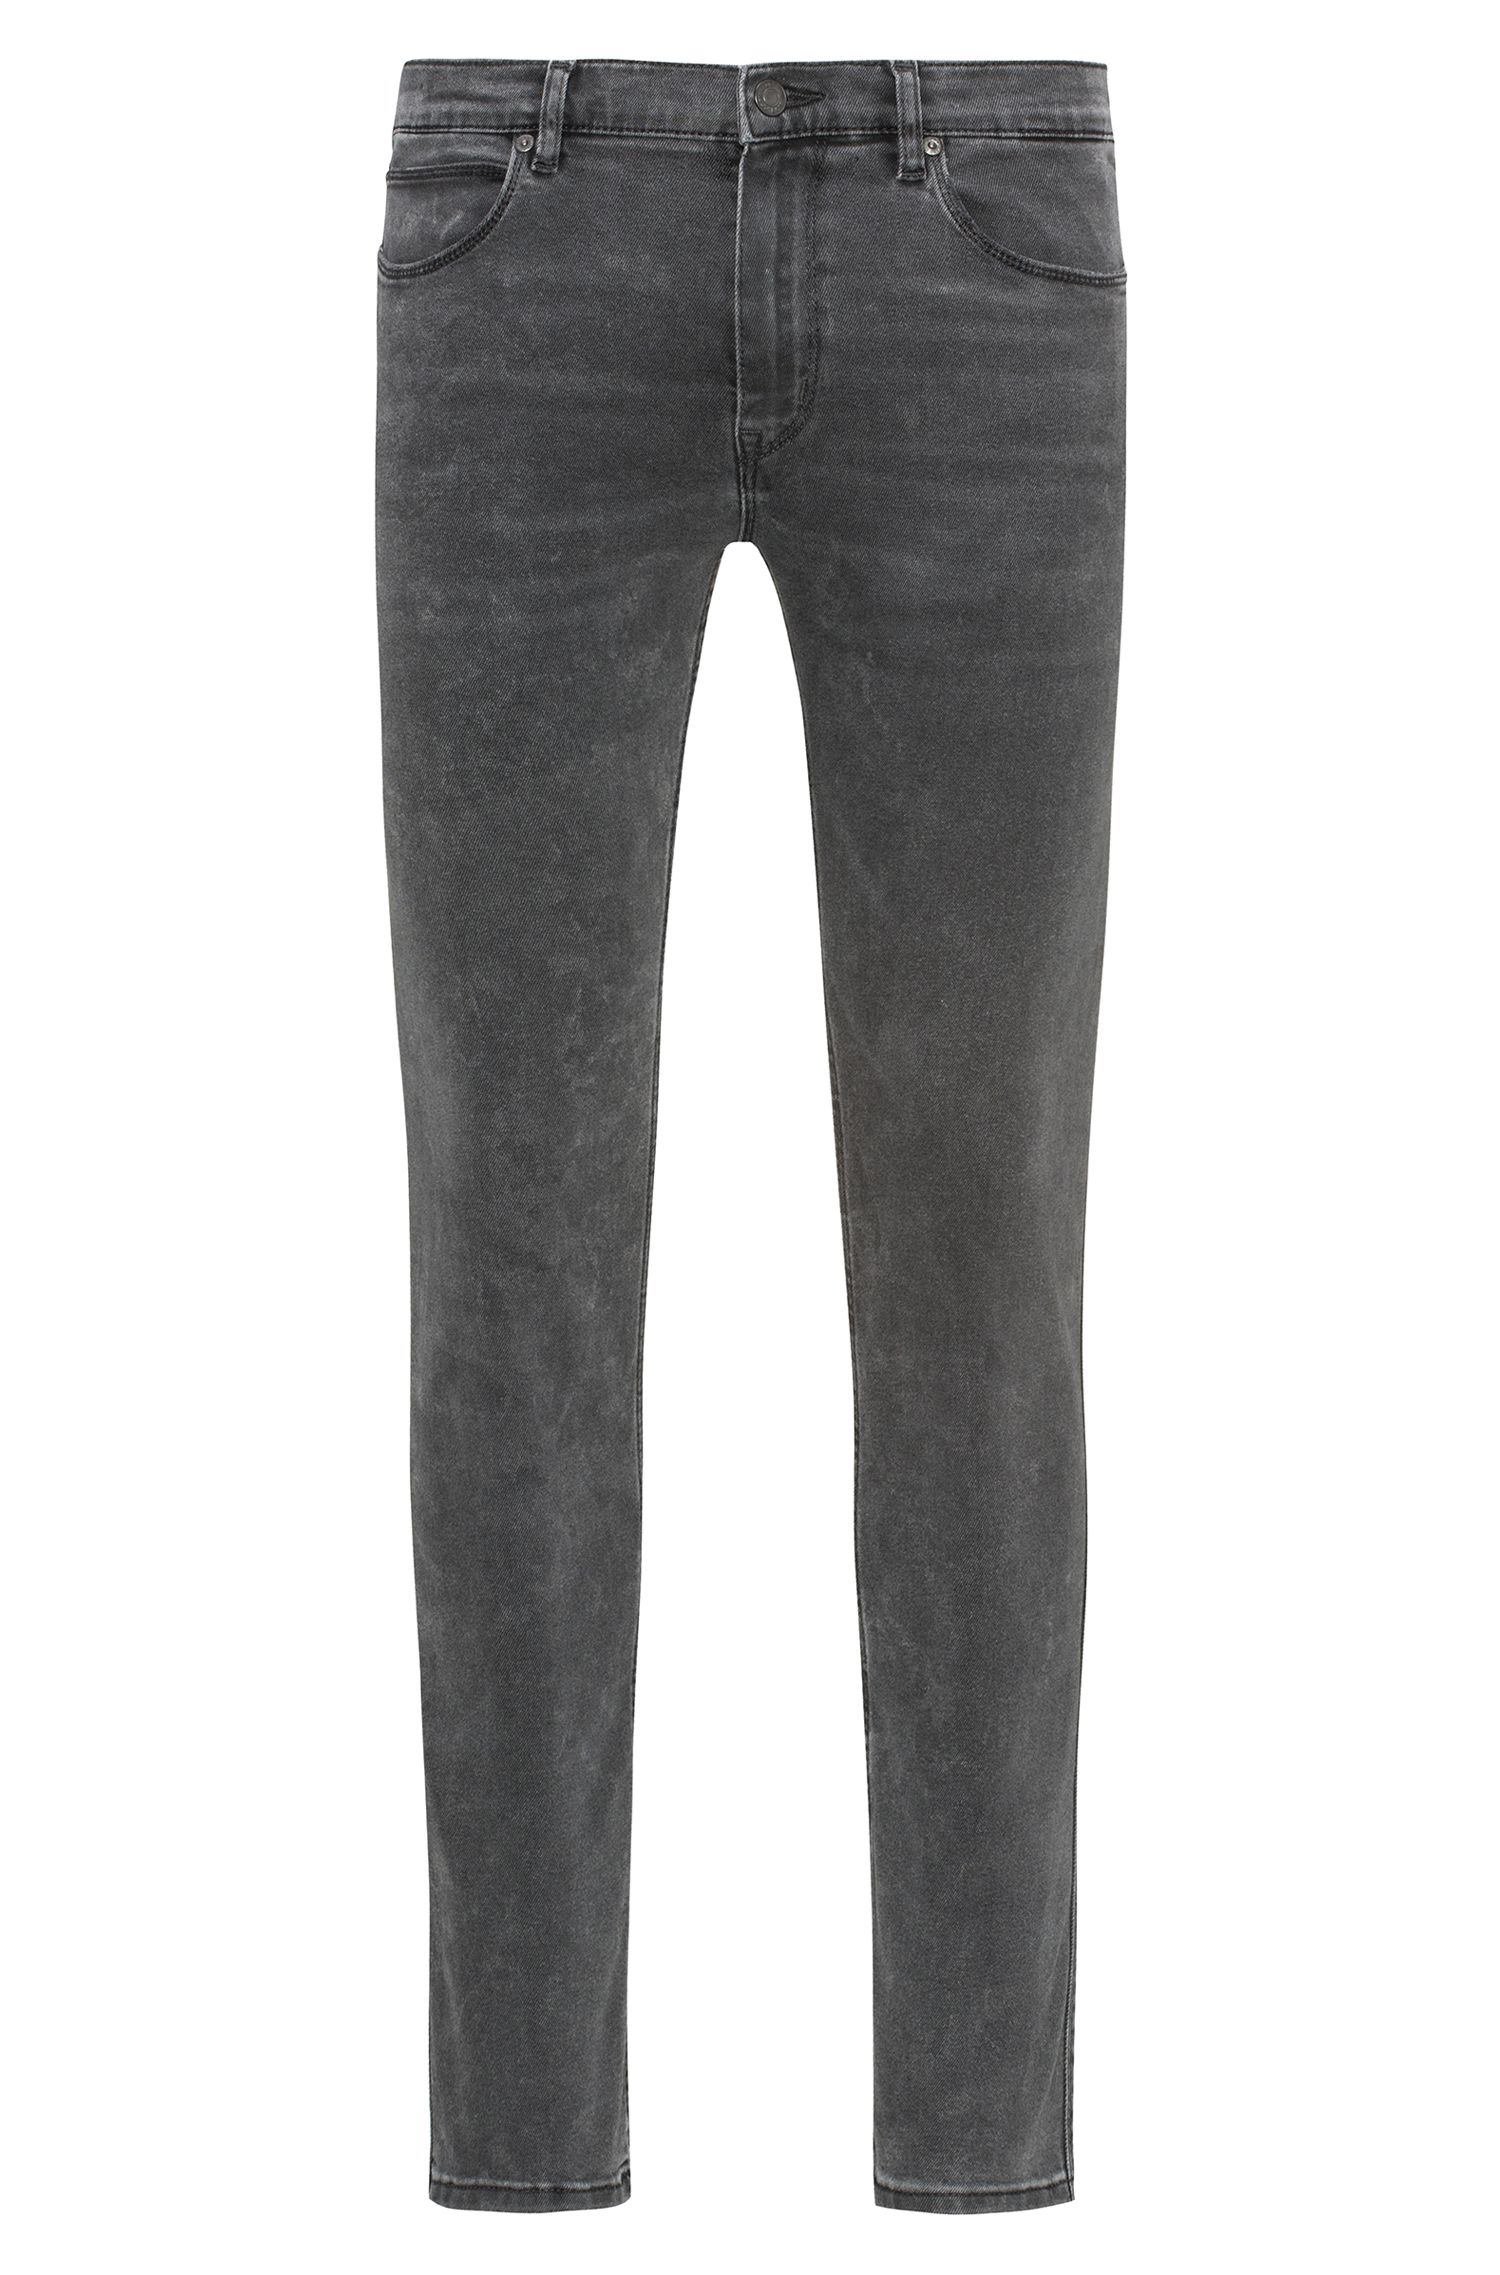 Mid-grey skinny-fit jeans in distressed stretch denim